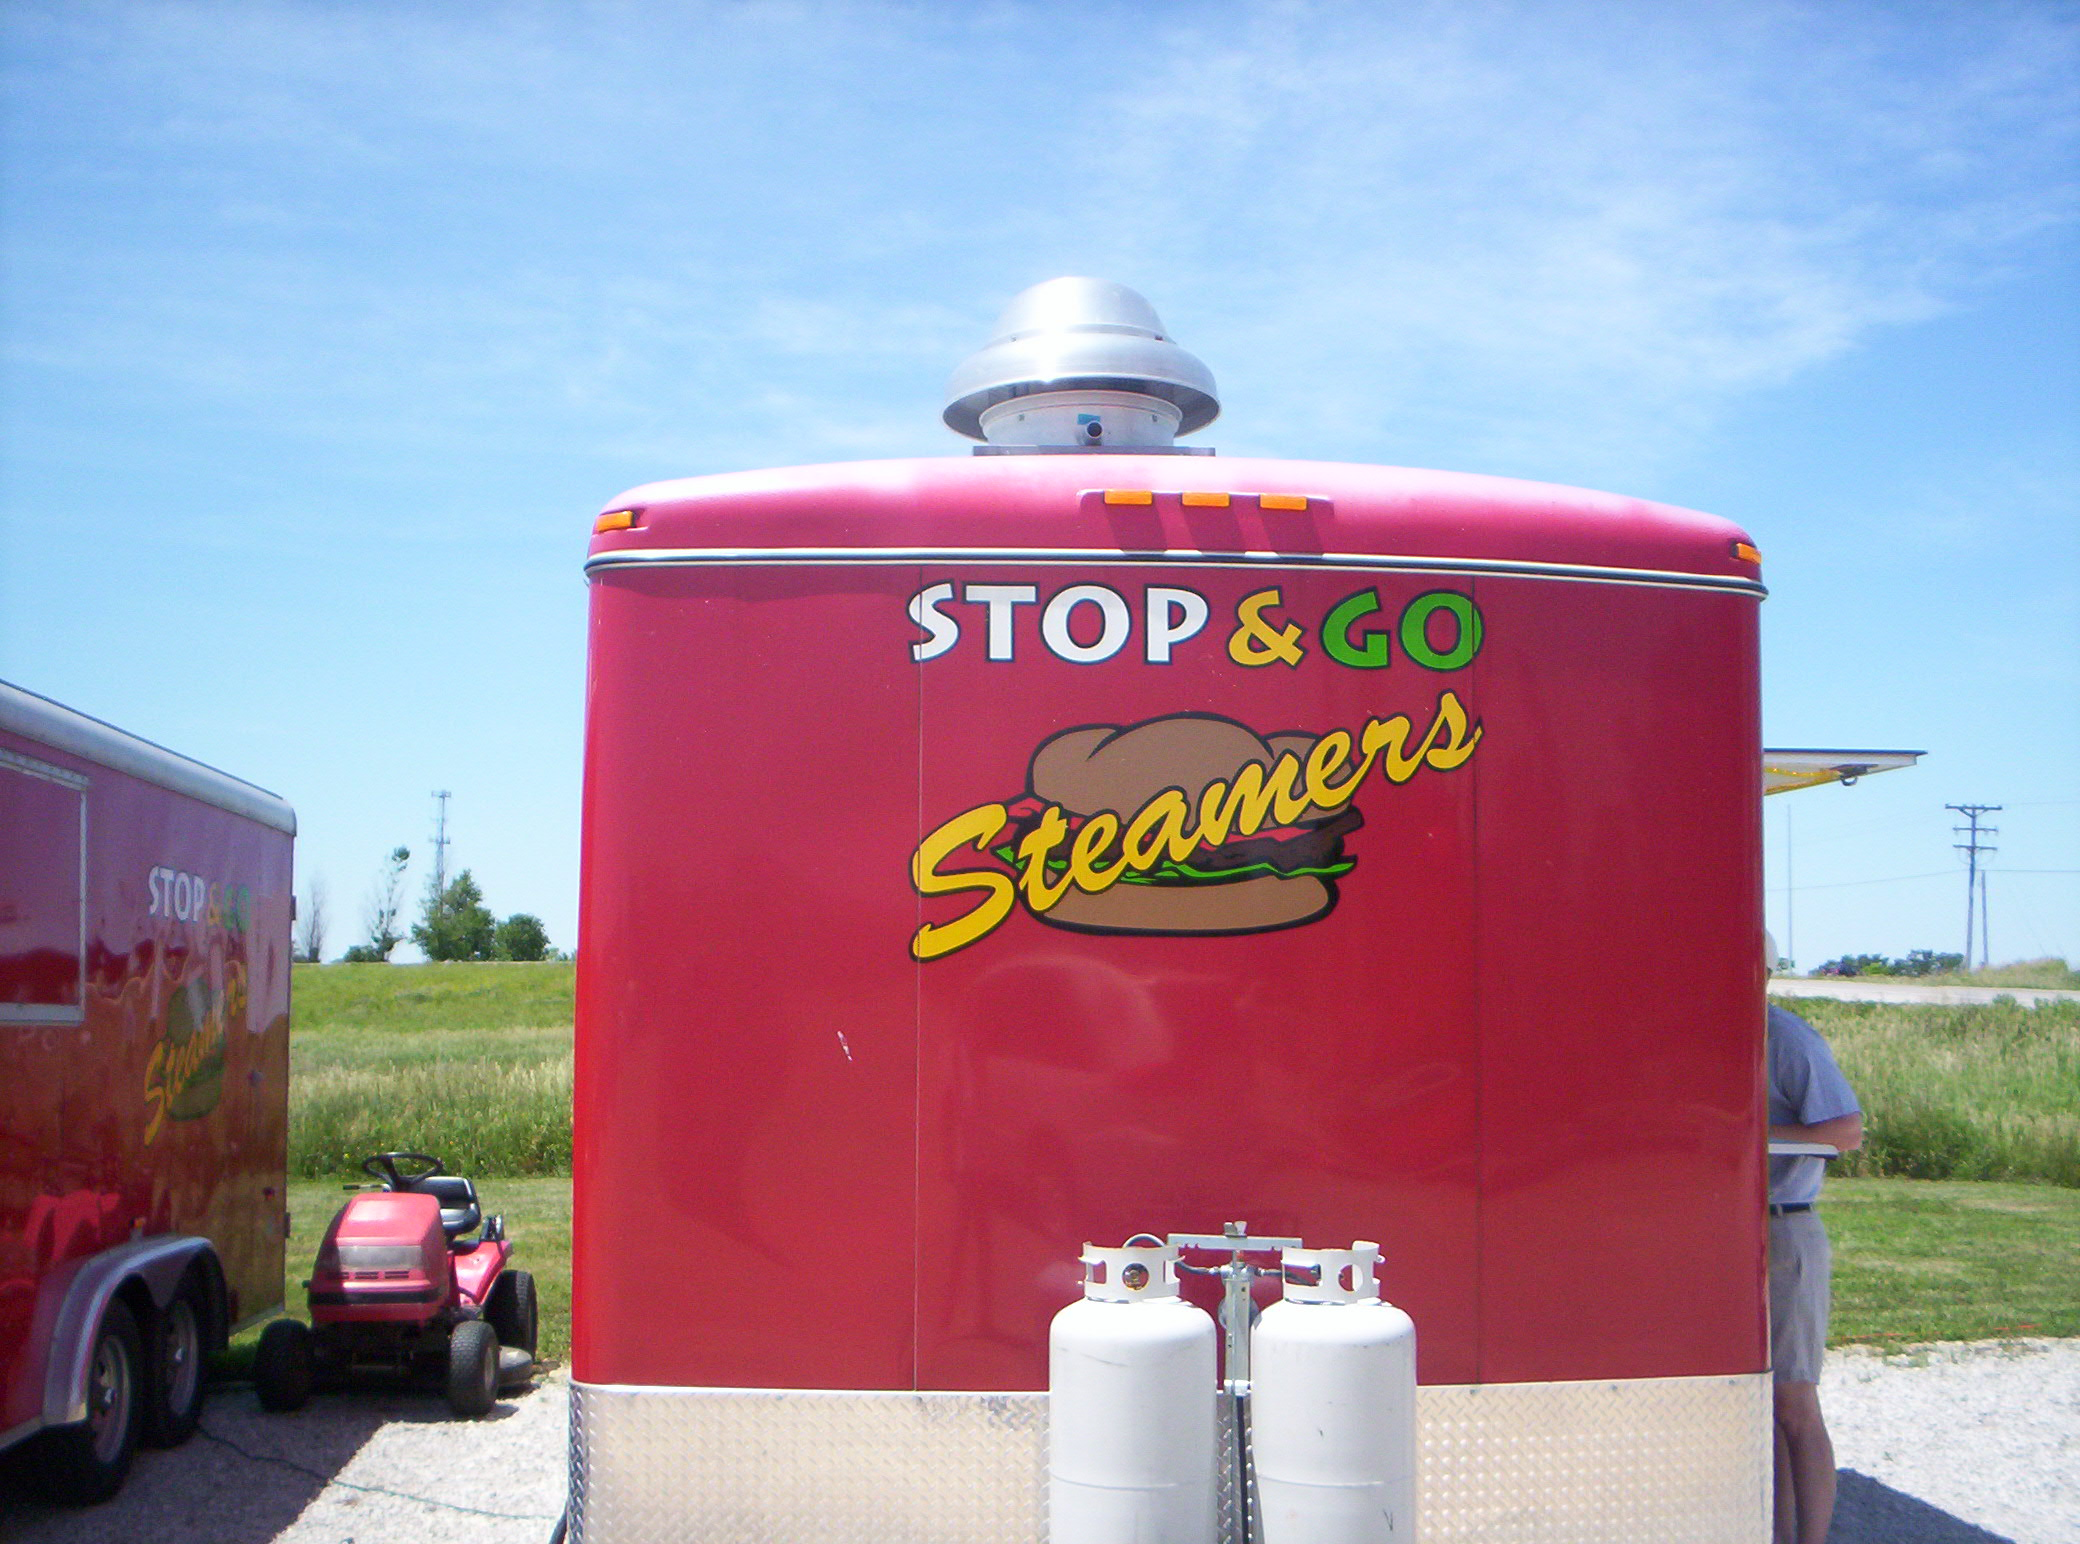 Stop & Go Steamers hamburgers located in eastern Iowa